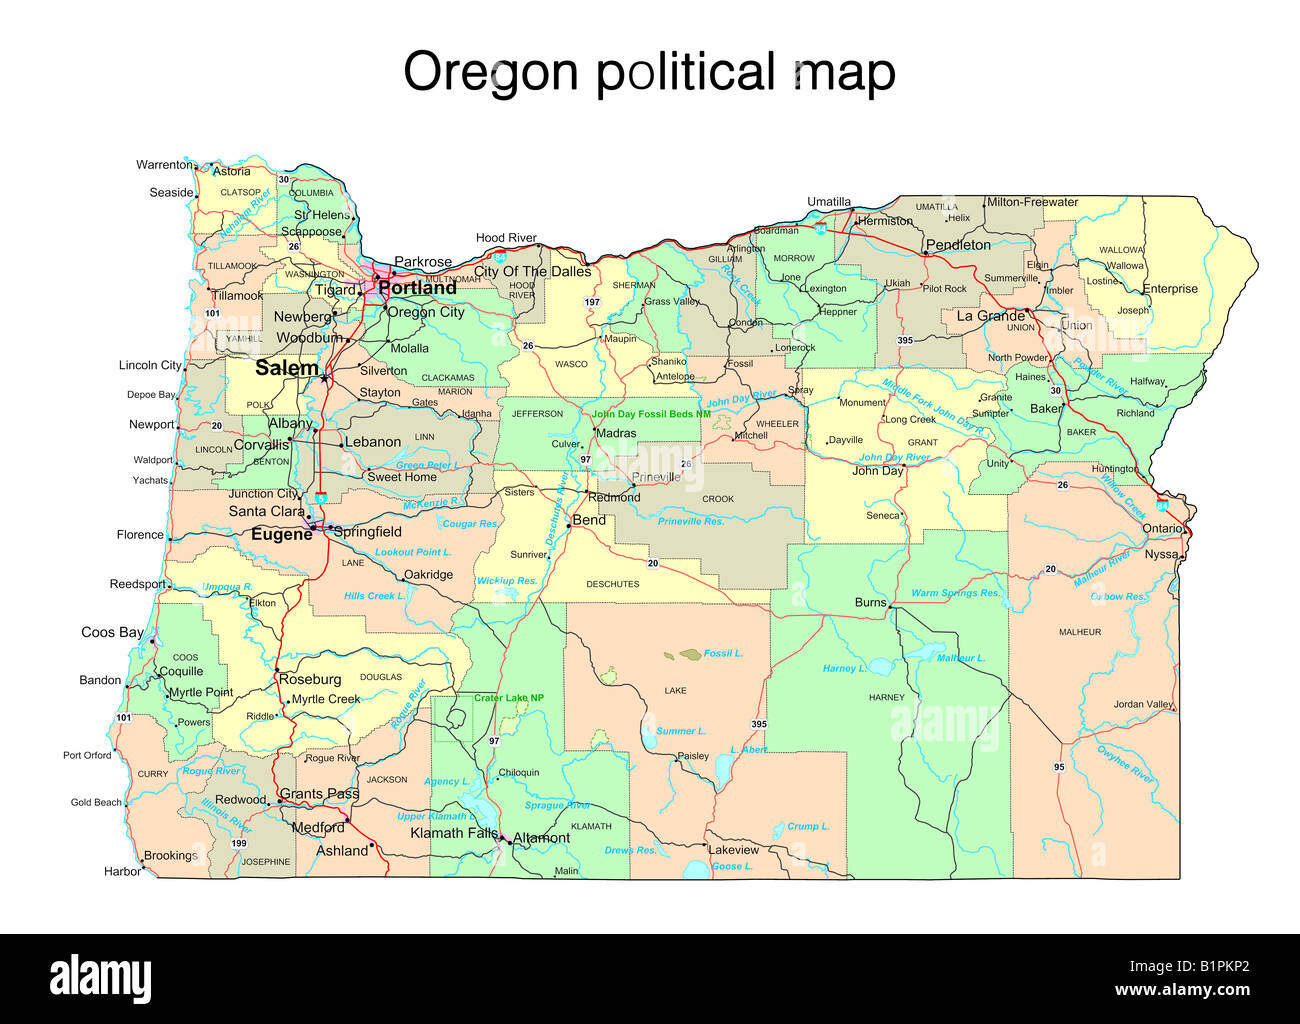 Oregon State Political Map Stock Photo Royalty Free Image - State map of oregon